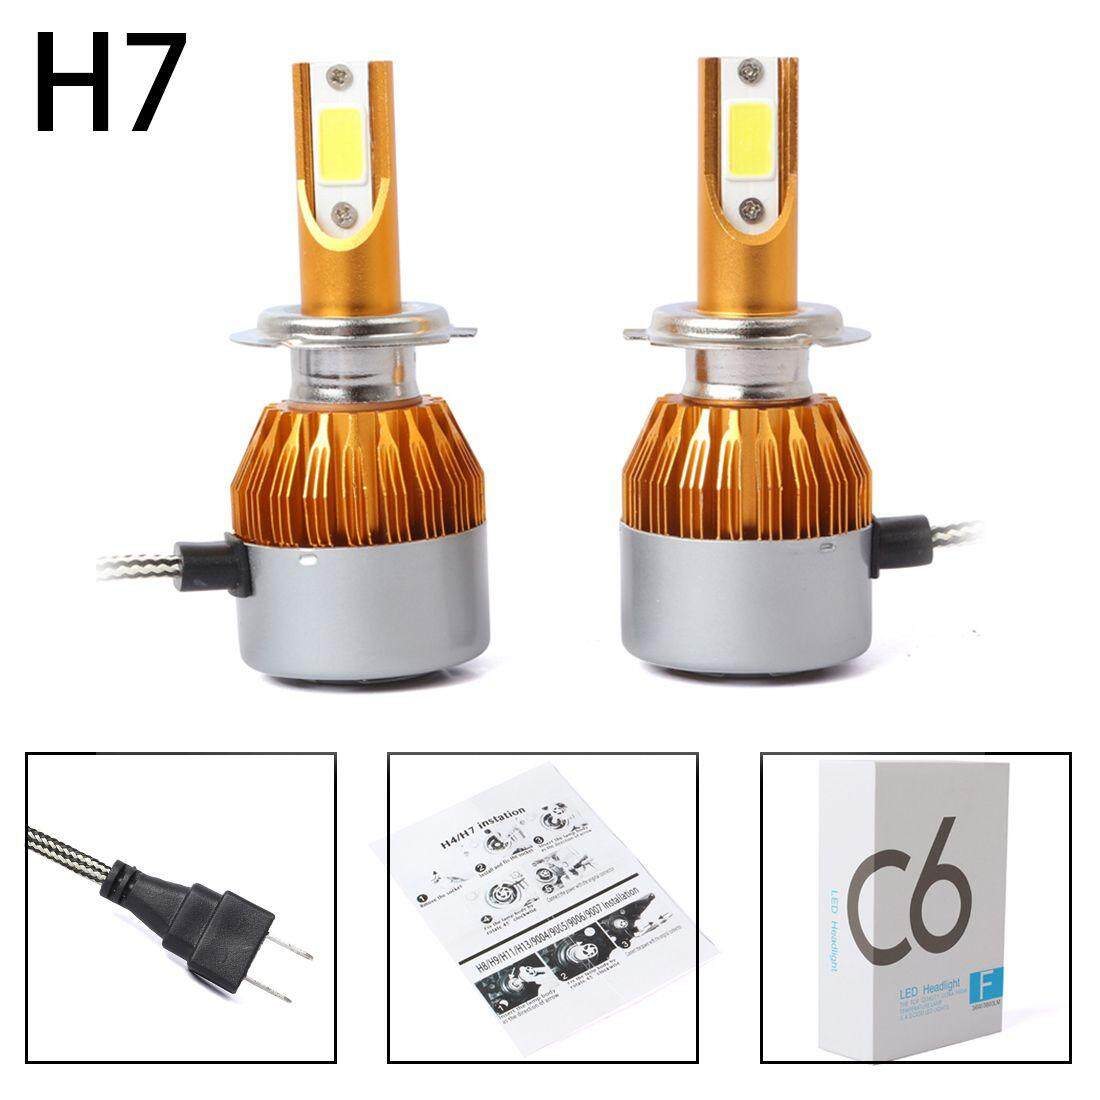 hight resolution of 2pcs c6 led car headlight kit cob h7 36w 7600lm white light bulbs gold